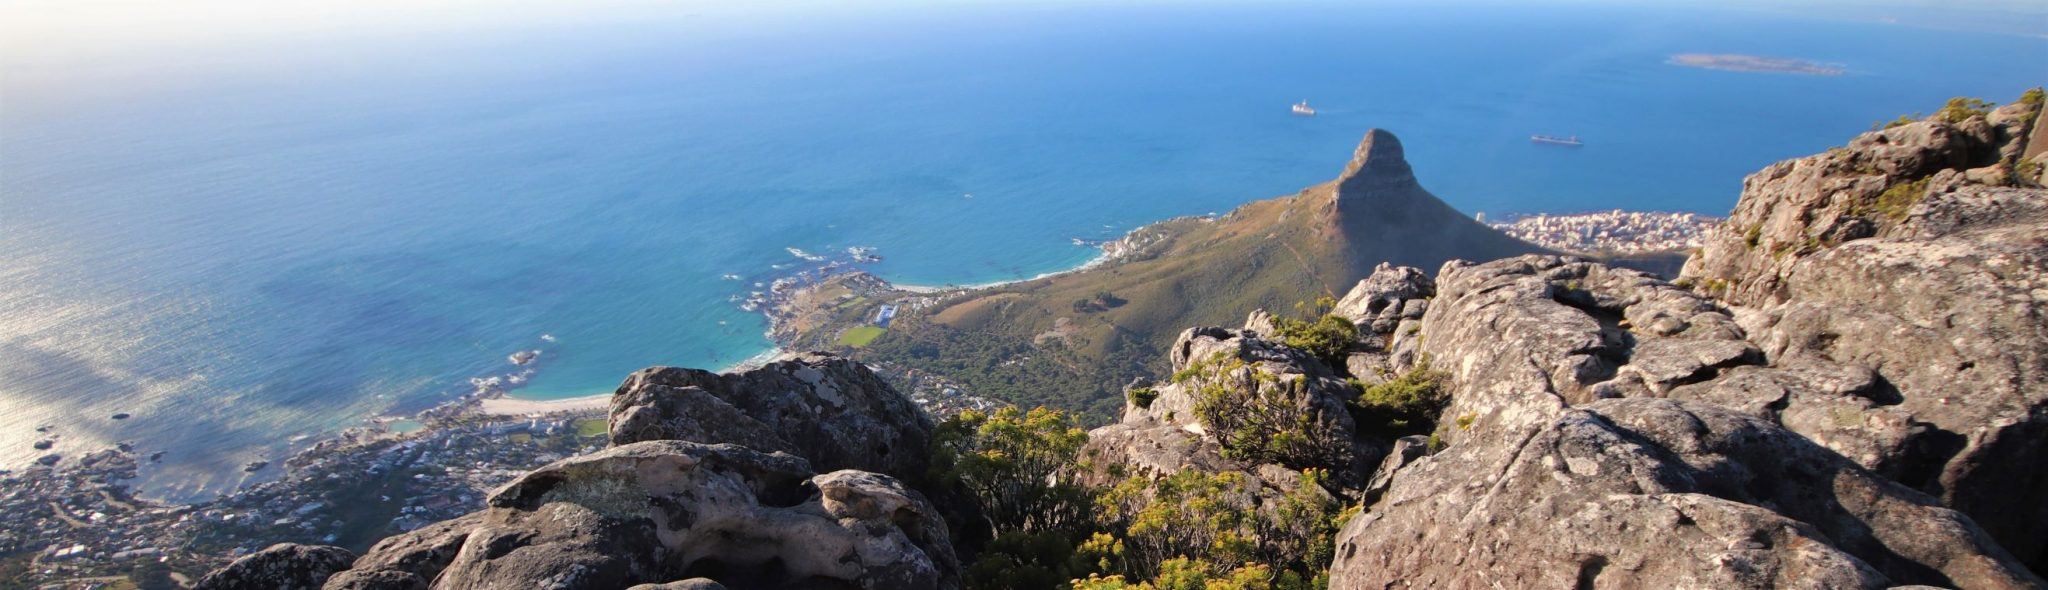 South Africa self drive Lions Head, Cape Town